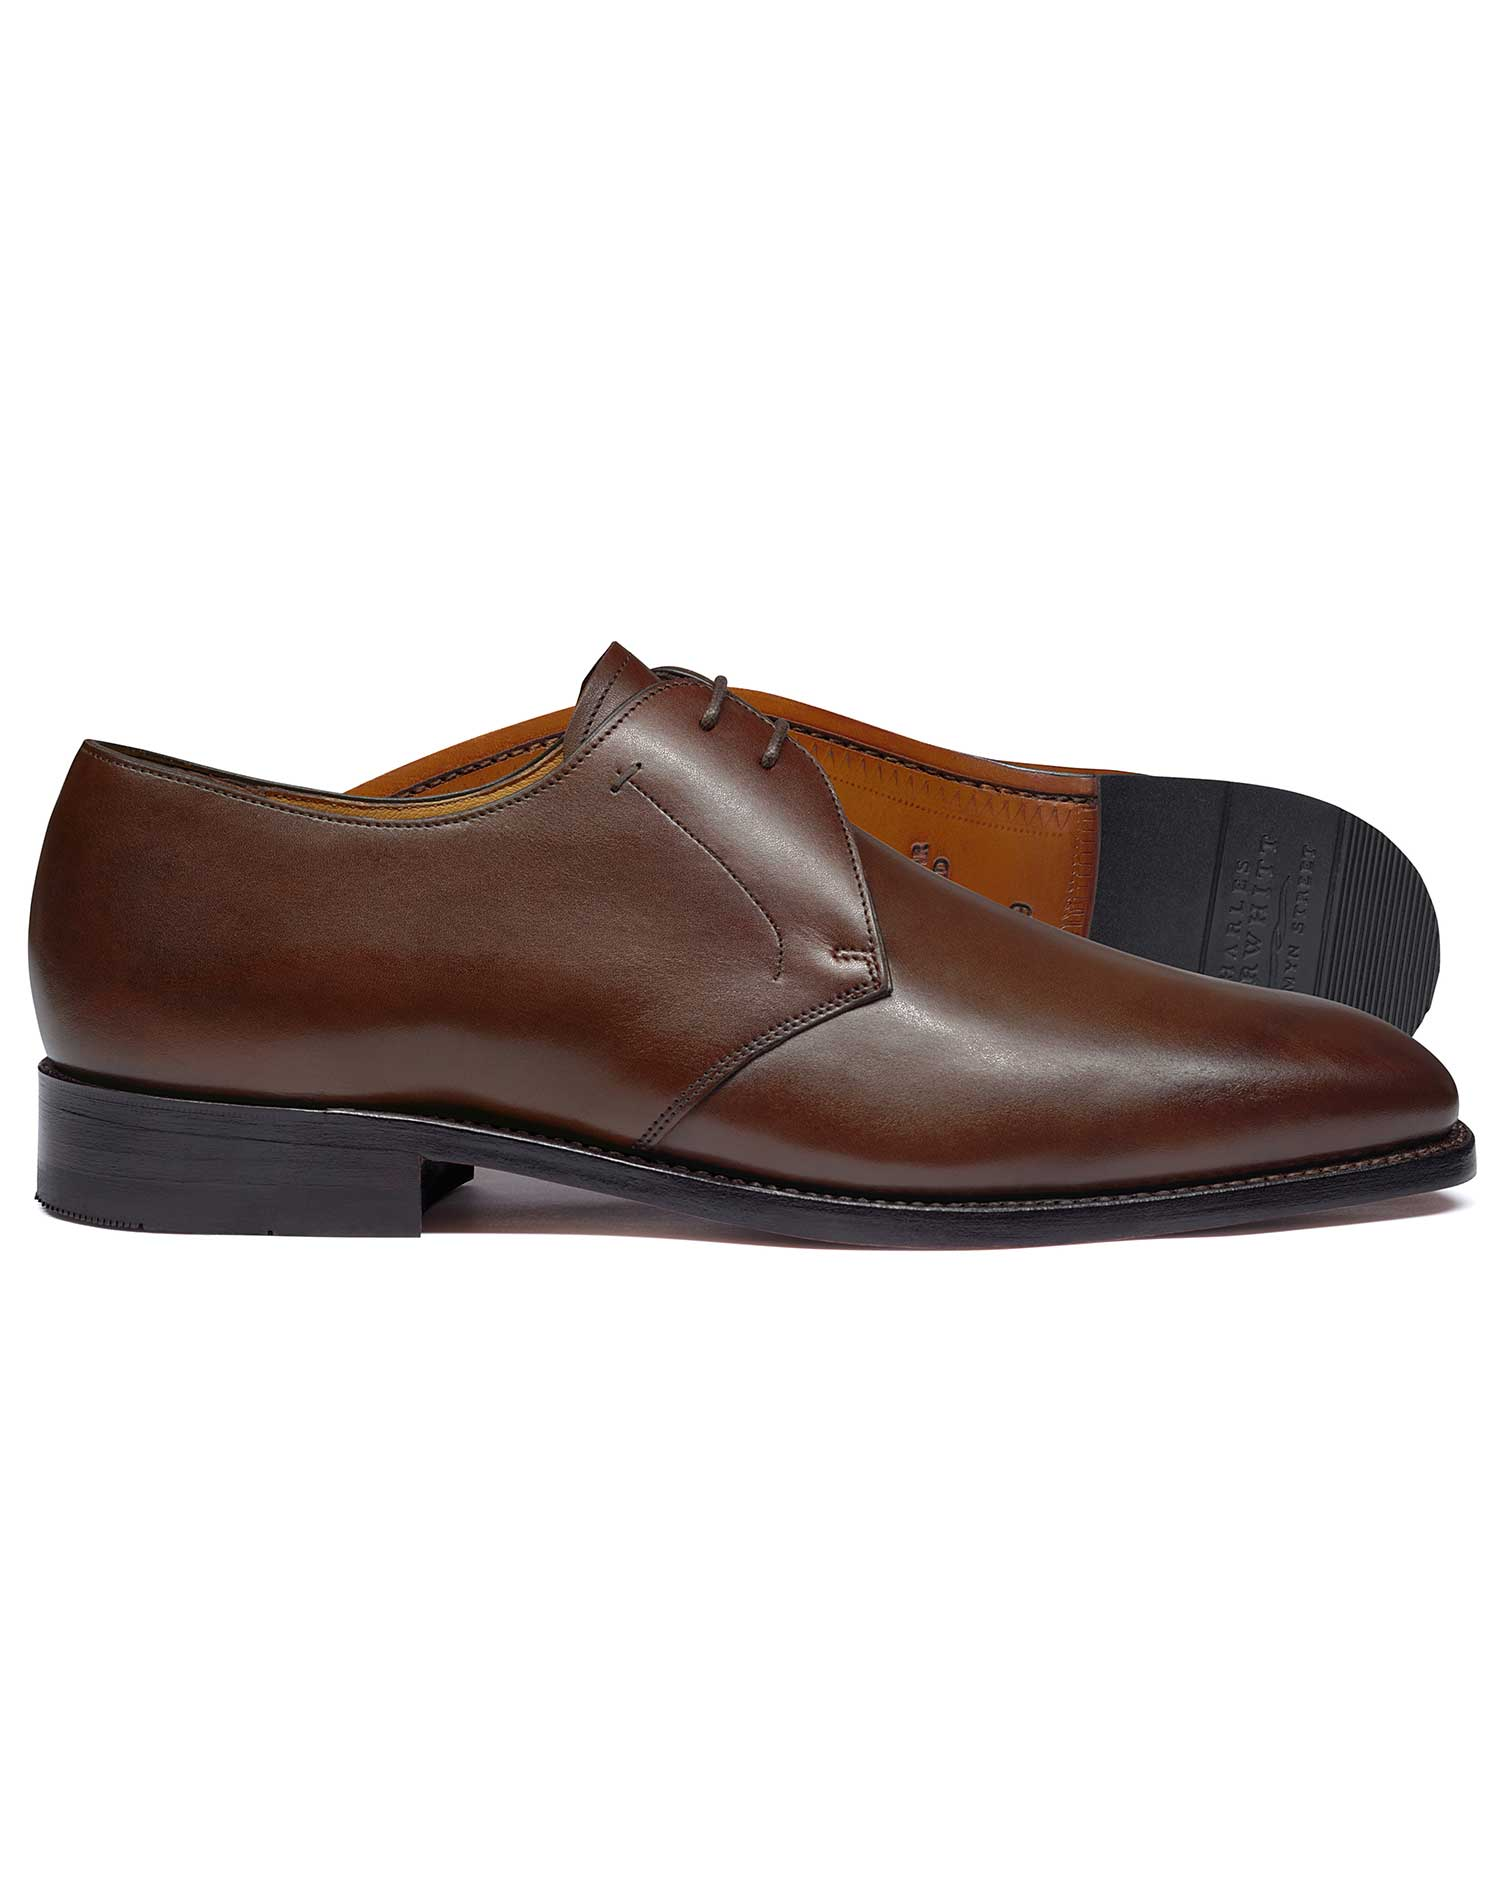 Brown Goodyear Welted 2 Eyelet Derby Shoes Size 8.5 R by Charles Tyrwhitt